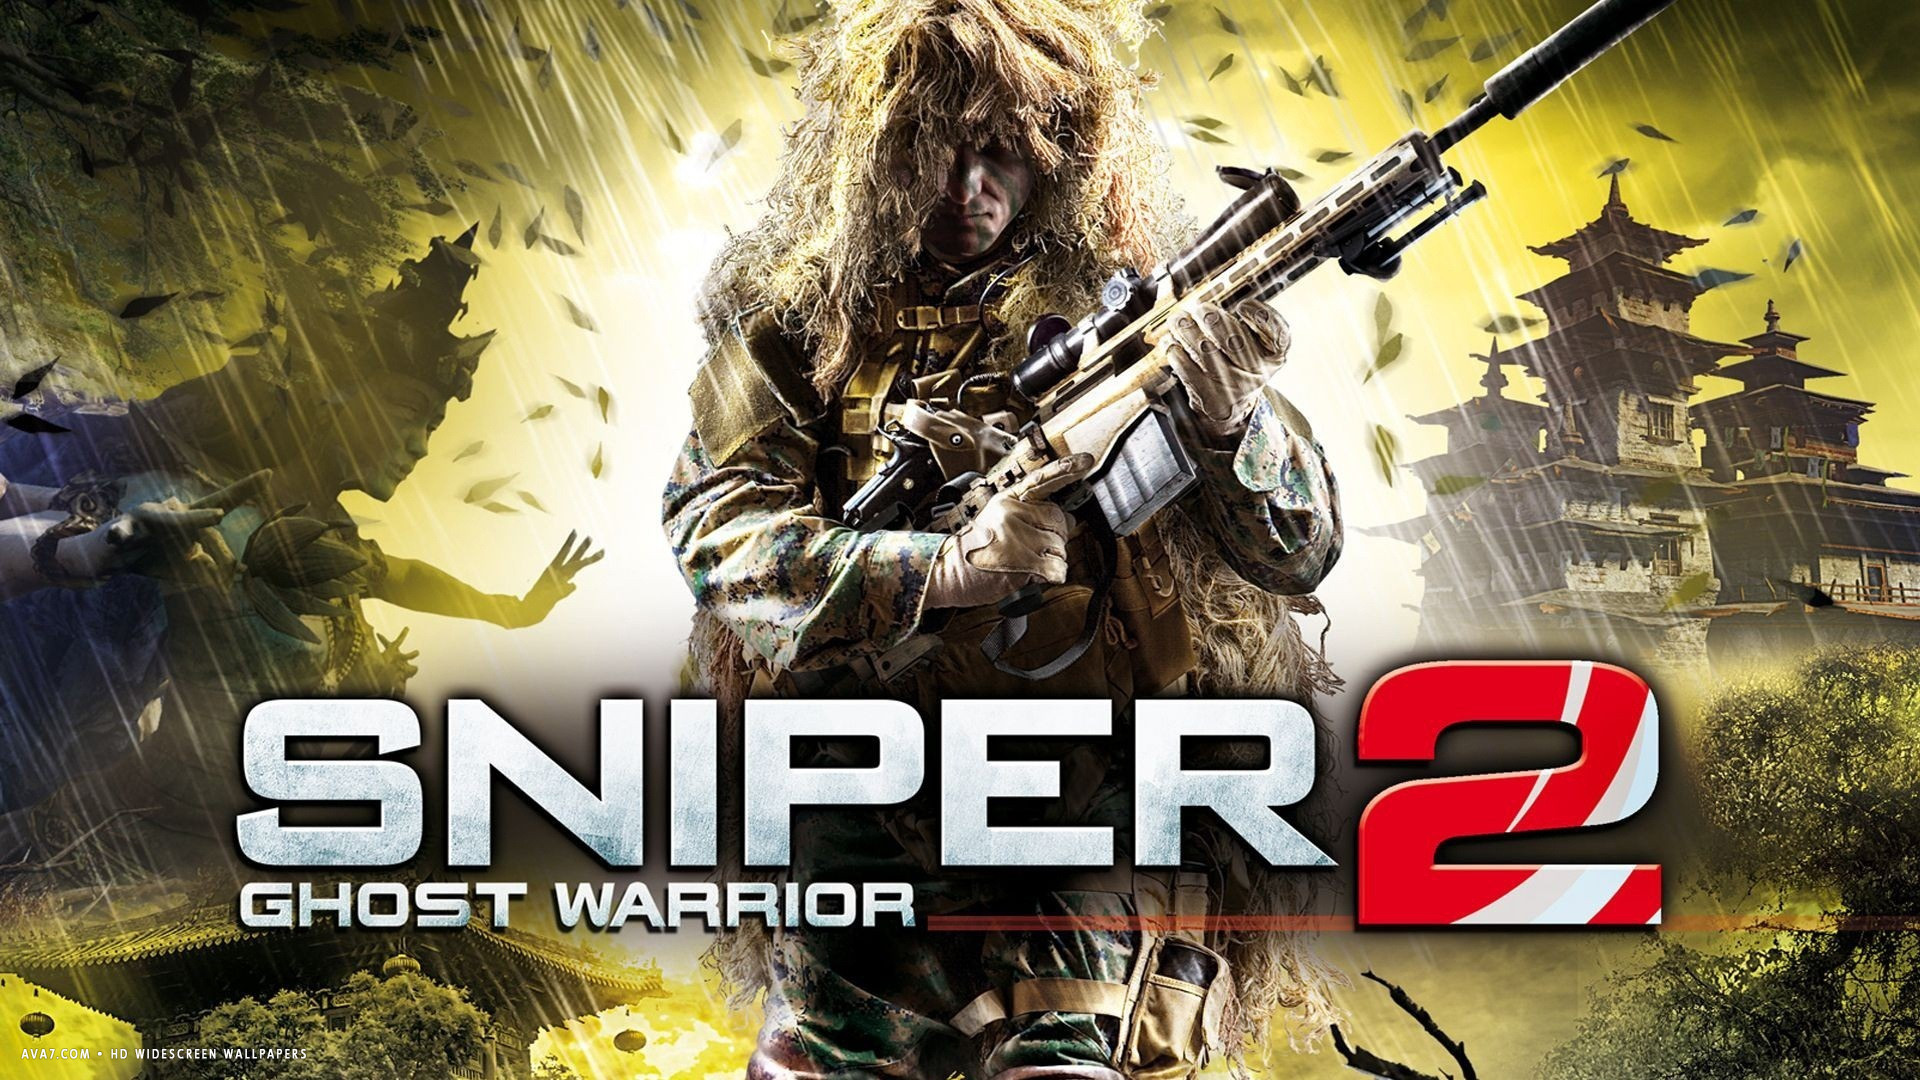 sniper ghost warrior 2 game hd widescreen wallpaper / games backgrounds